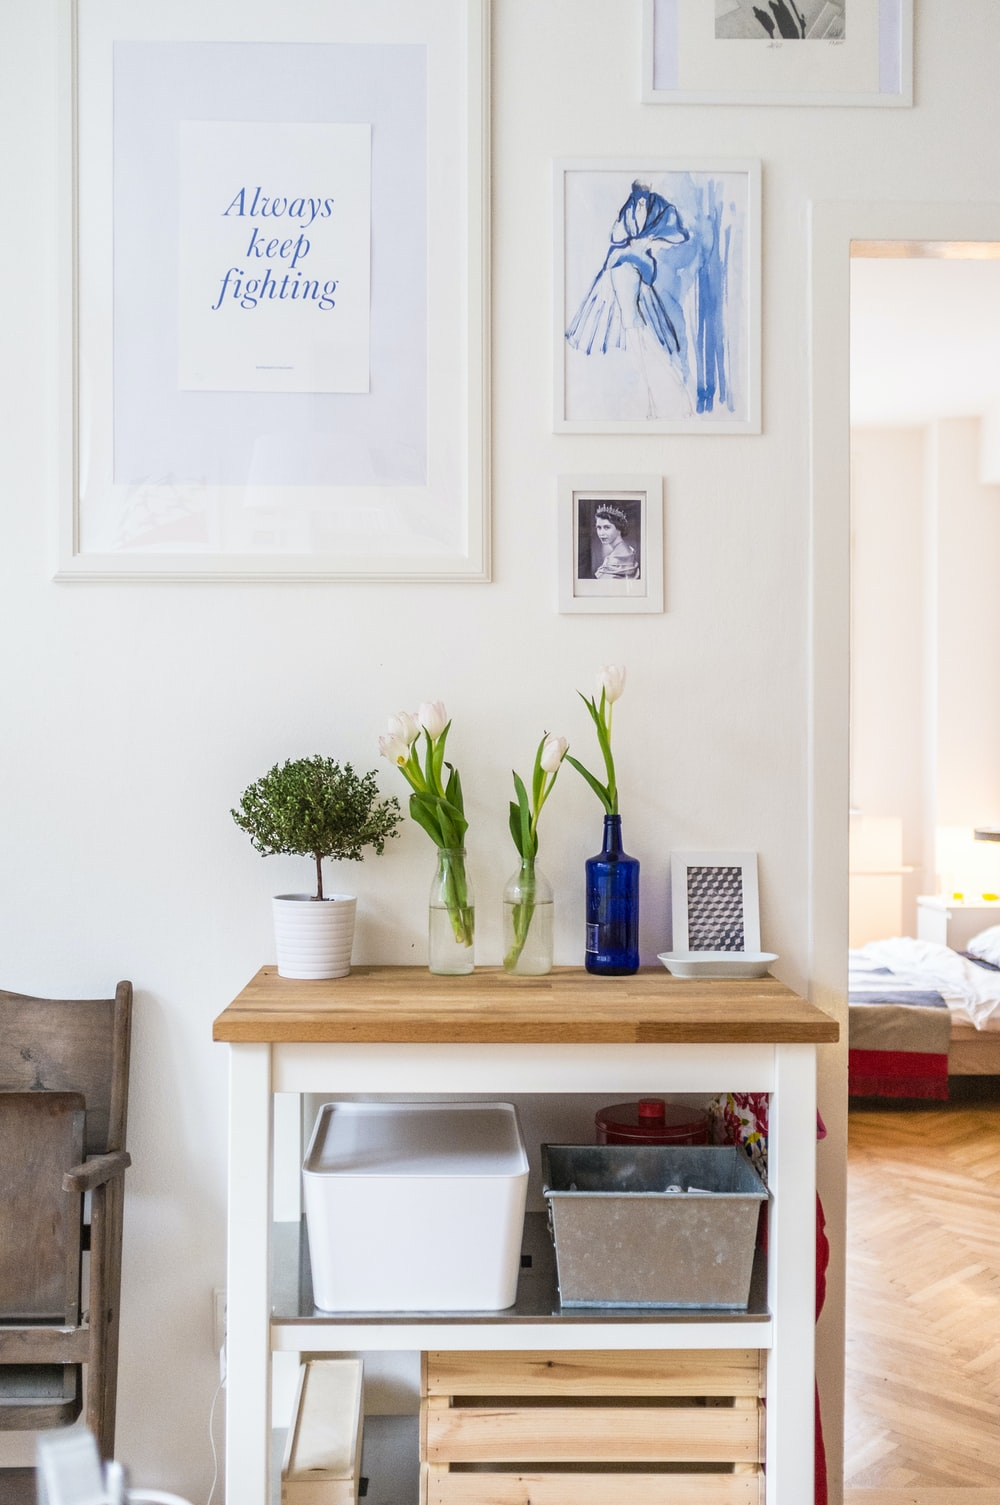 white and brown wooden end table near wall inside room